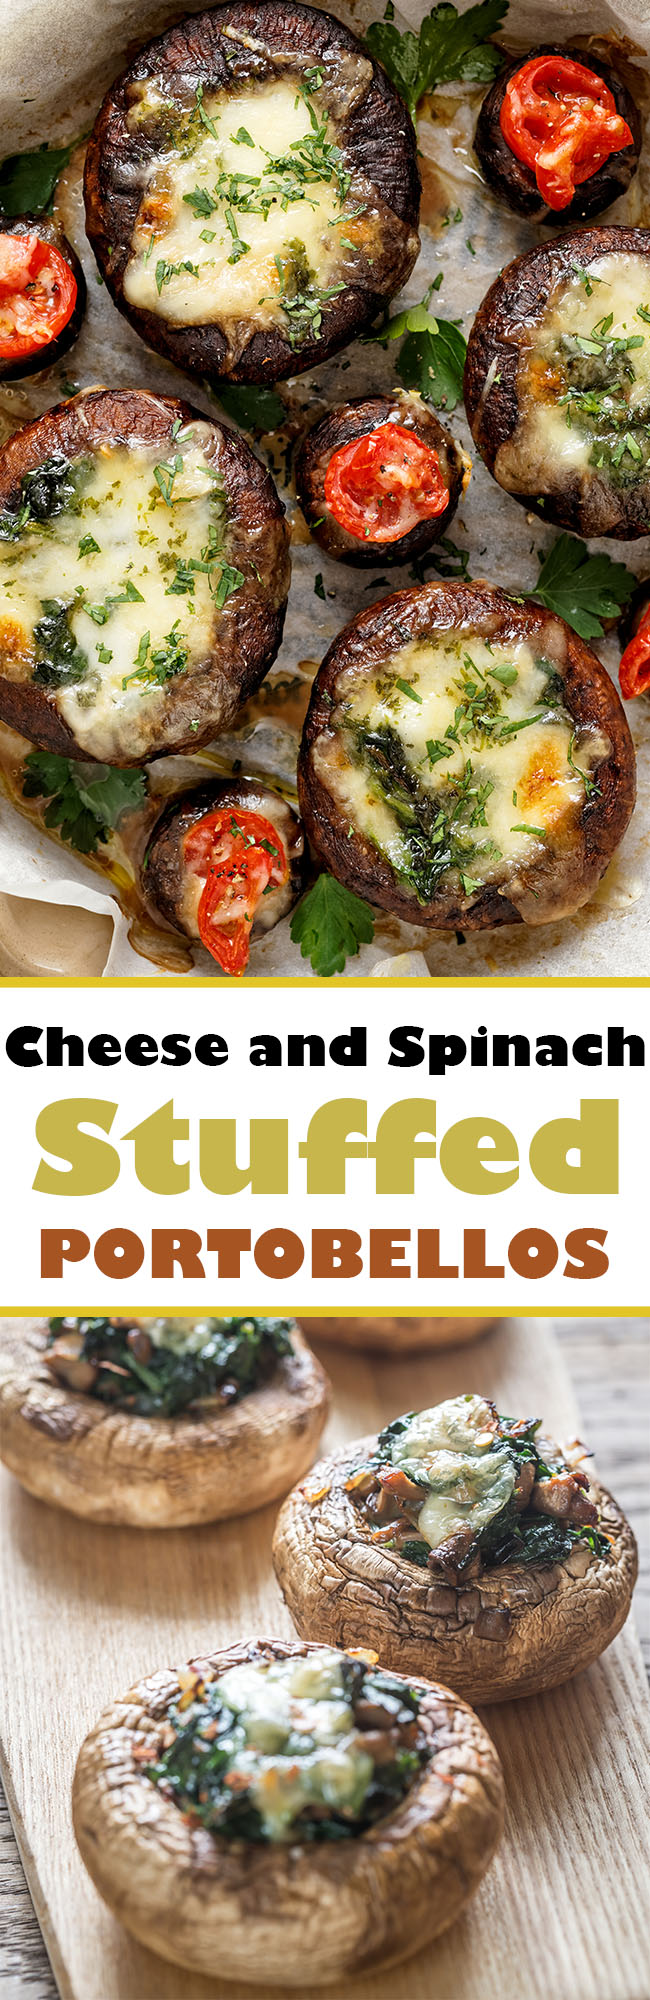 SFDGFDSGFDGS - Cheese and Spinach Stuffed Portobellos